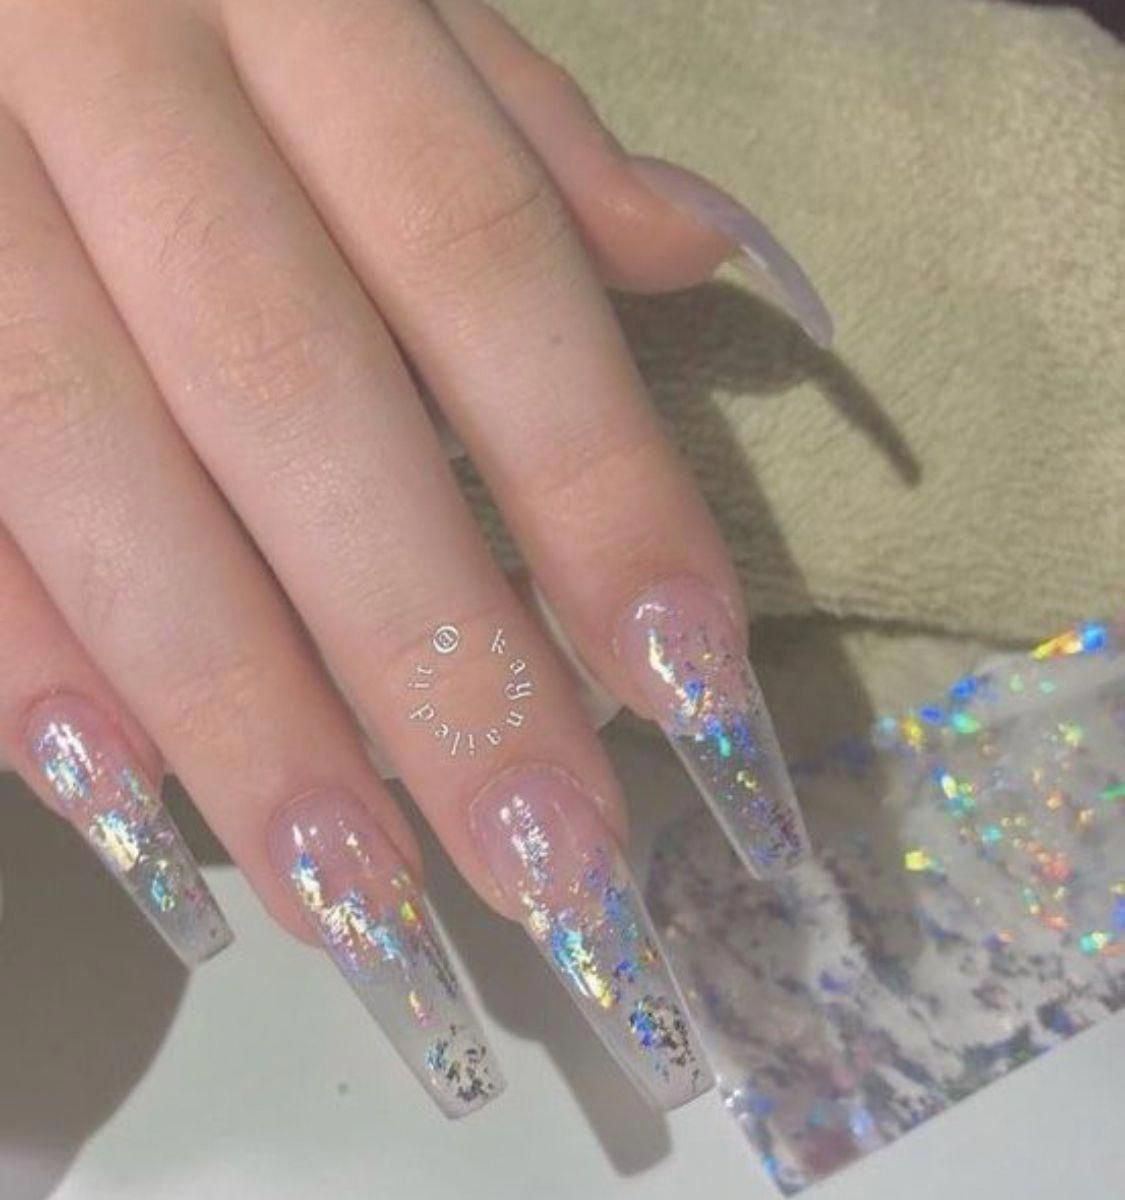 Look At These Stiletto Acrylic Nails Stilettoacrylicnails Acrylicnailsdesigns Holographicnails Holographic Nails Stiletto Acrylic Nails Clear Acrylic Nails